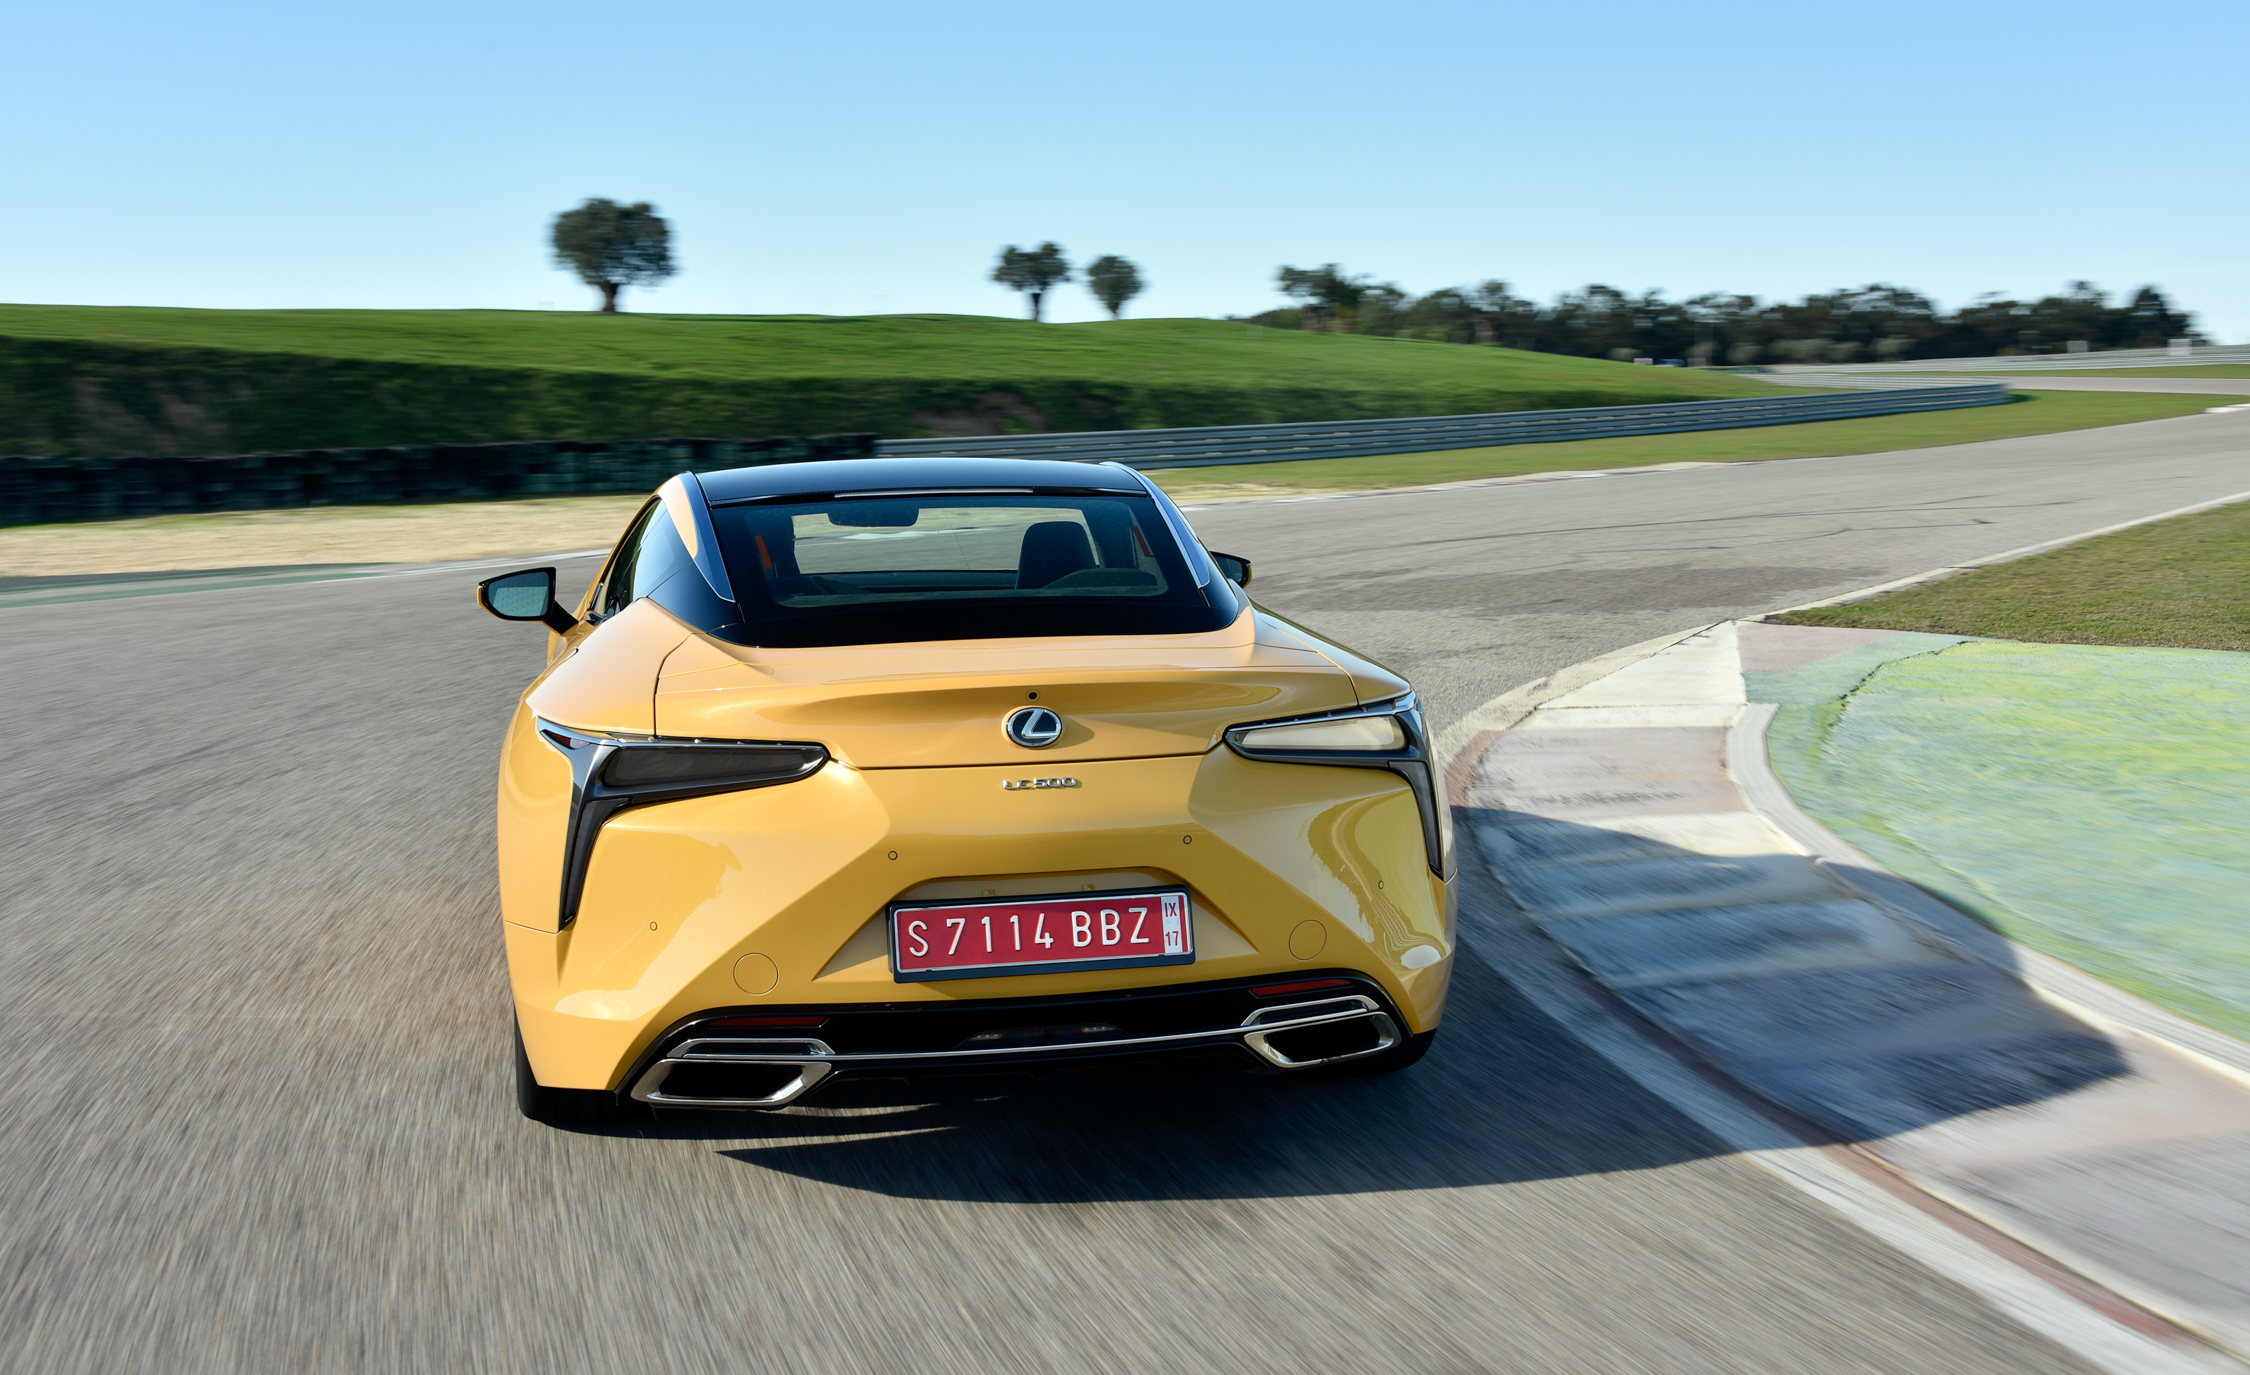 2018 Lexus Lc 500 Performance Rear View (View 25 of 84)